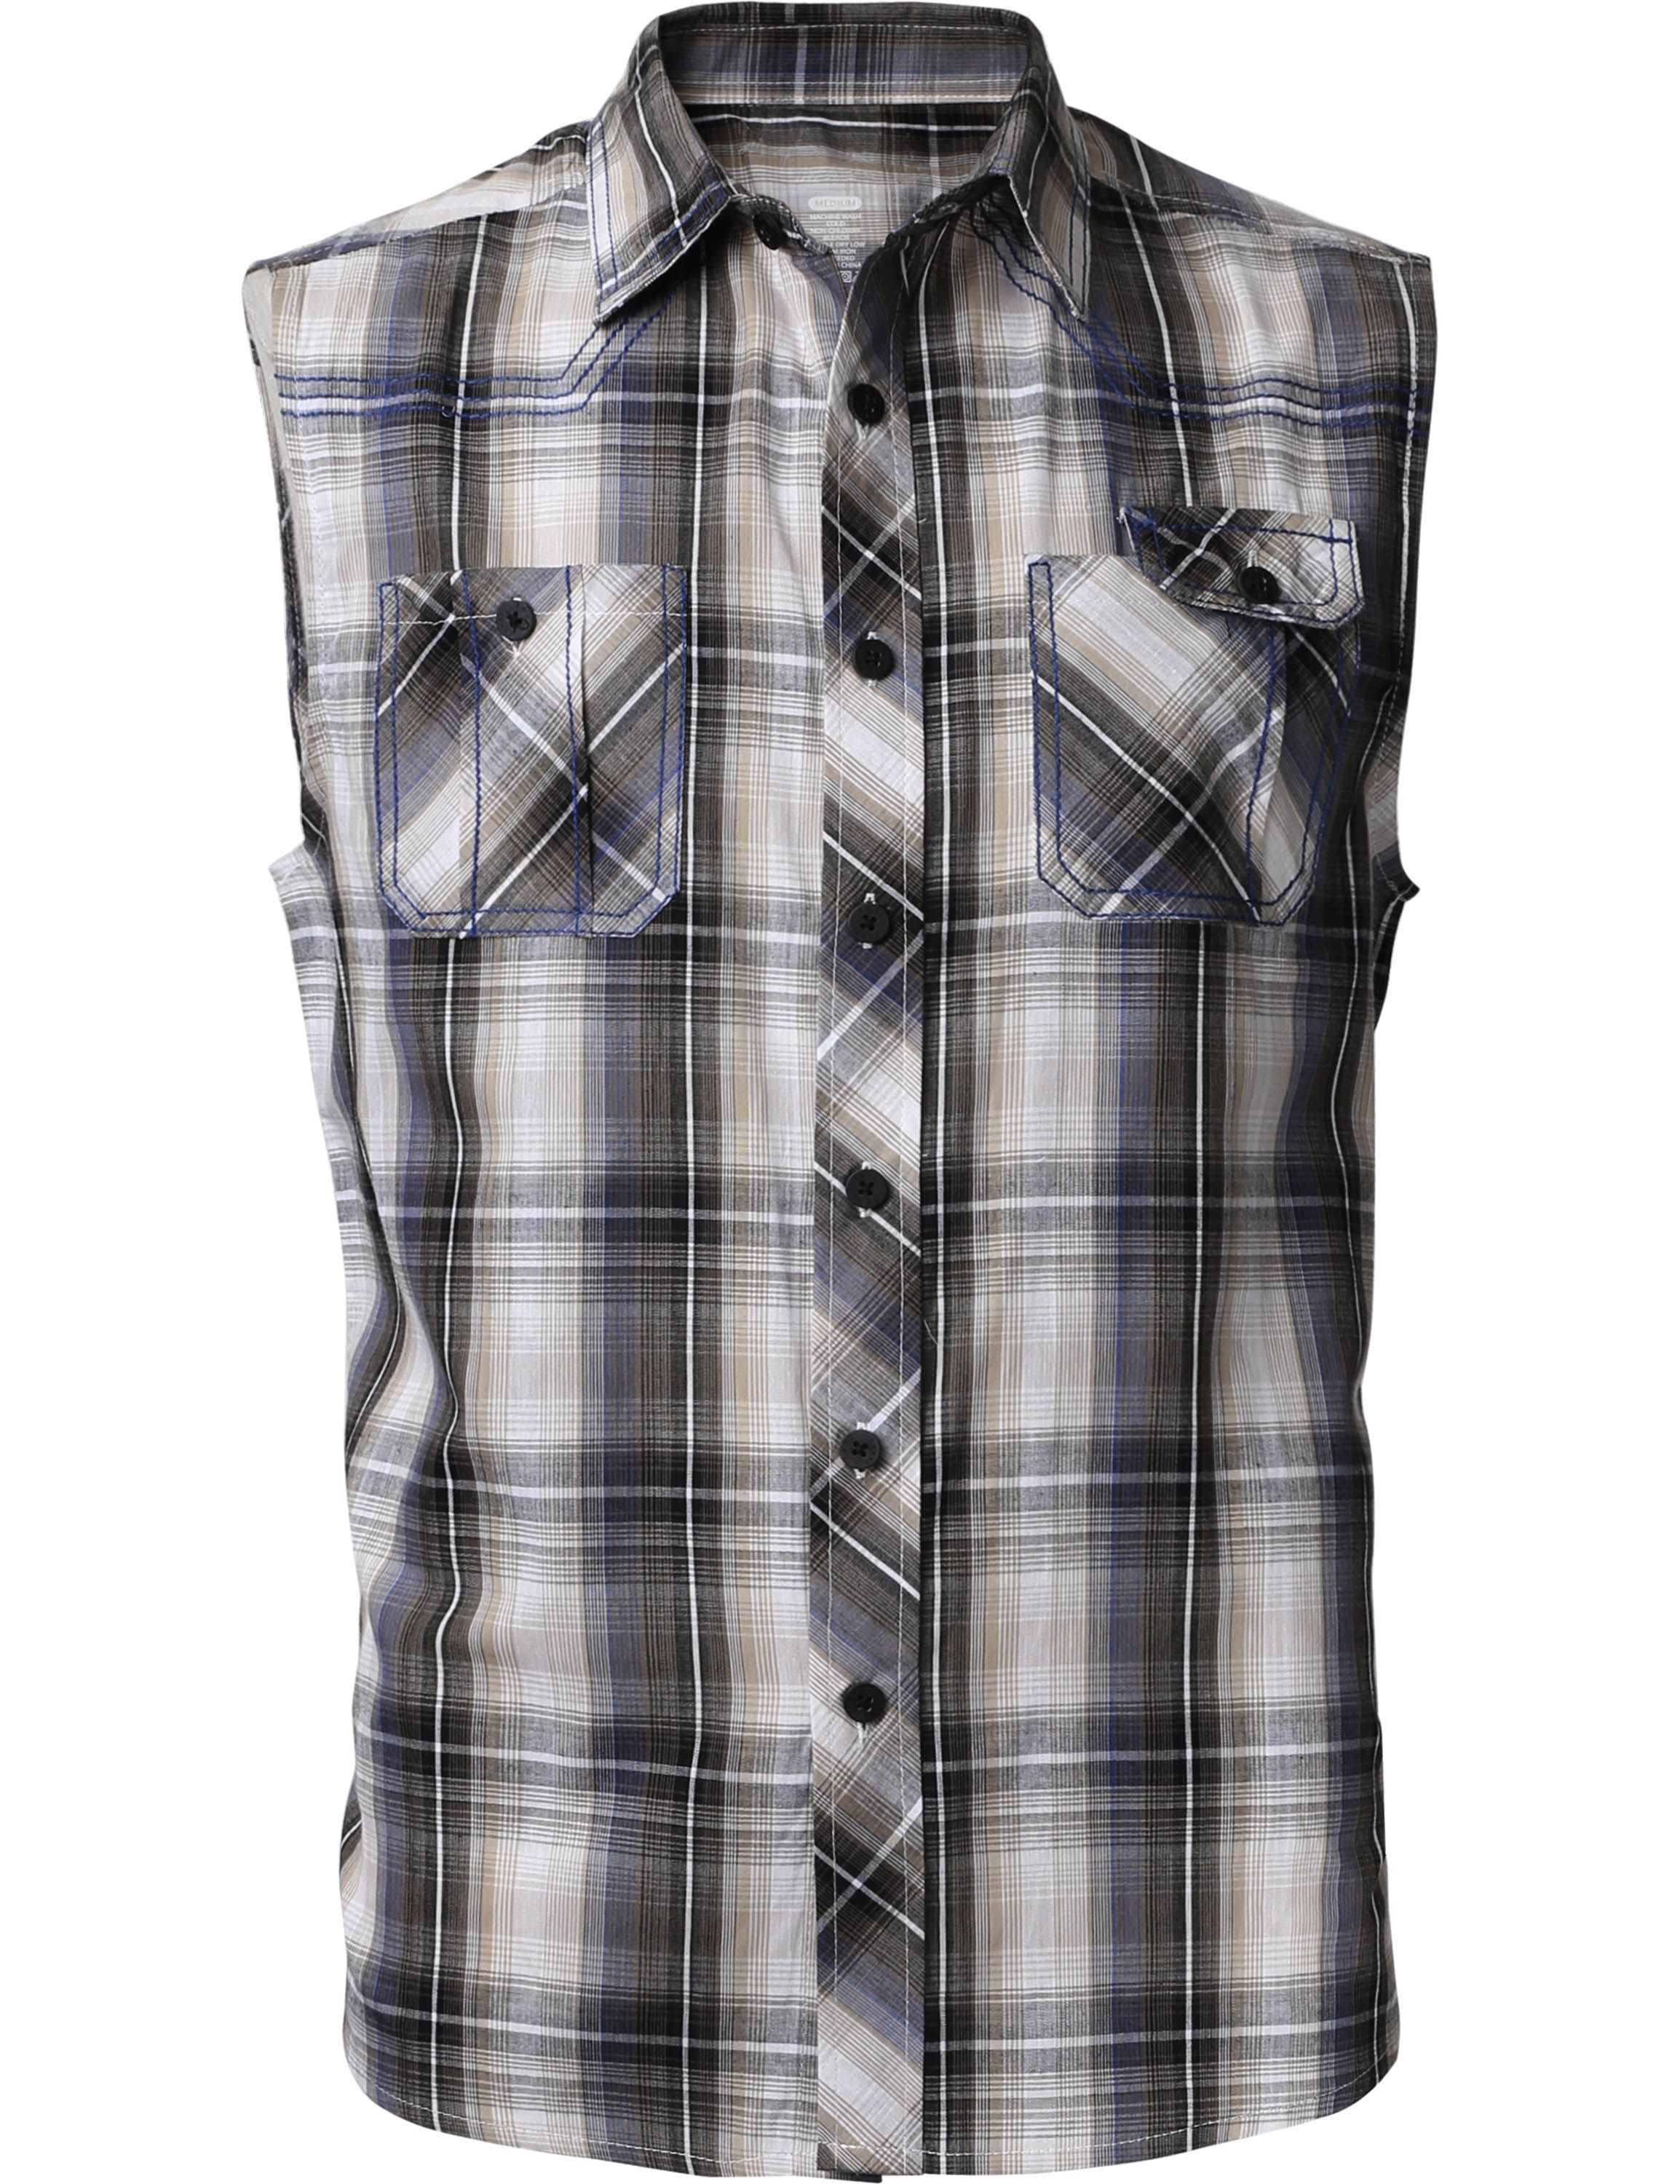 Free 2 Day Shipping Buy Ma Croix Mens Sleeveless Plaid Shirt Casual Button Down Flannel At Walmart Com Casual Plaid Shirt Casual Shirts Sleeveless Shirt Mens [ 3000 x 2308 Pixel ]